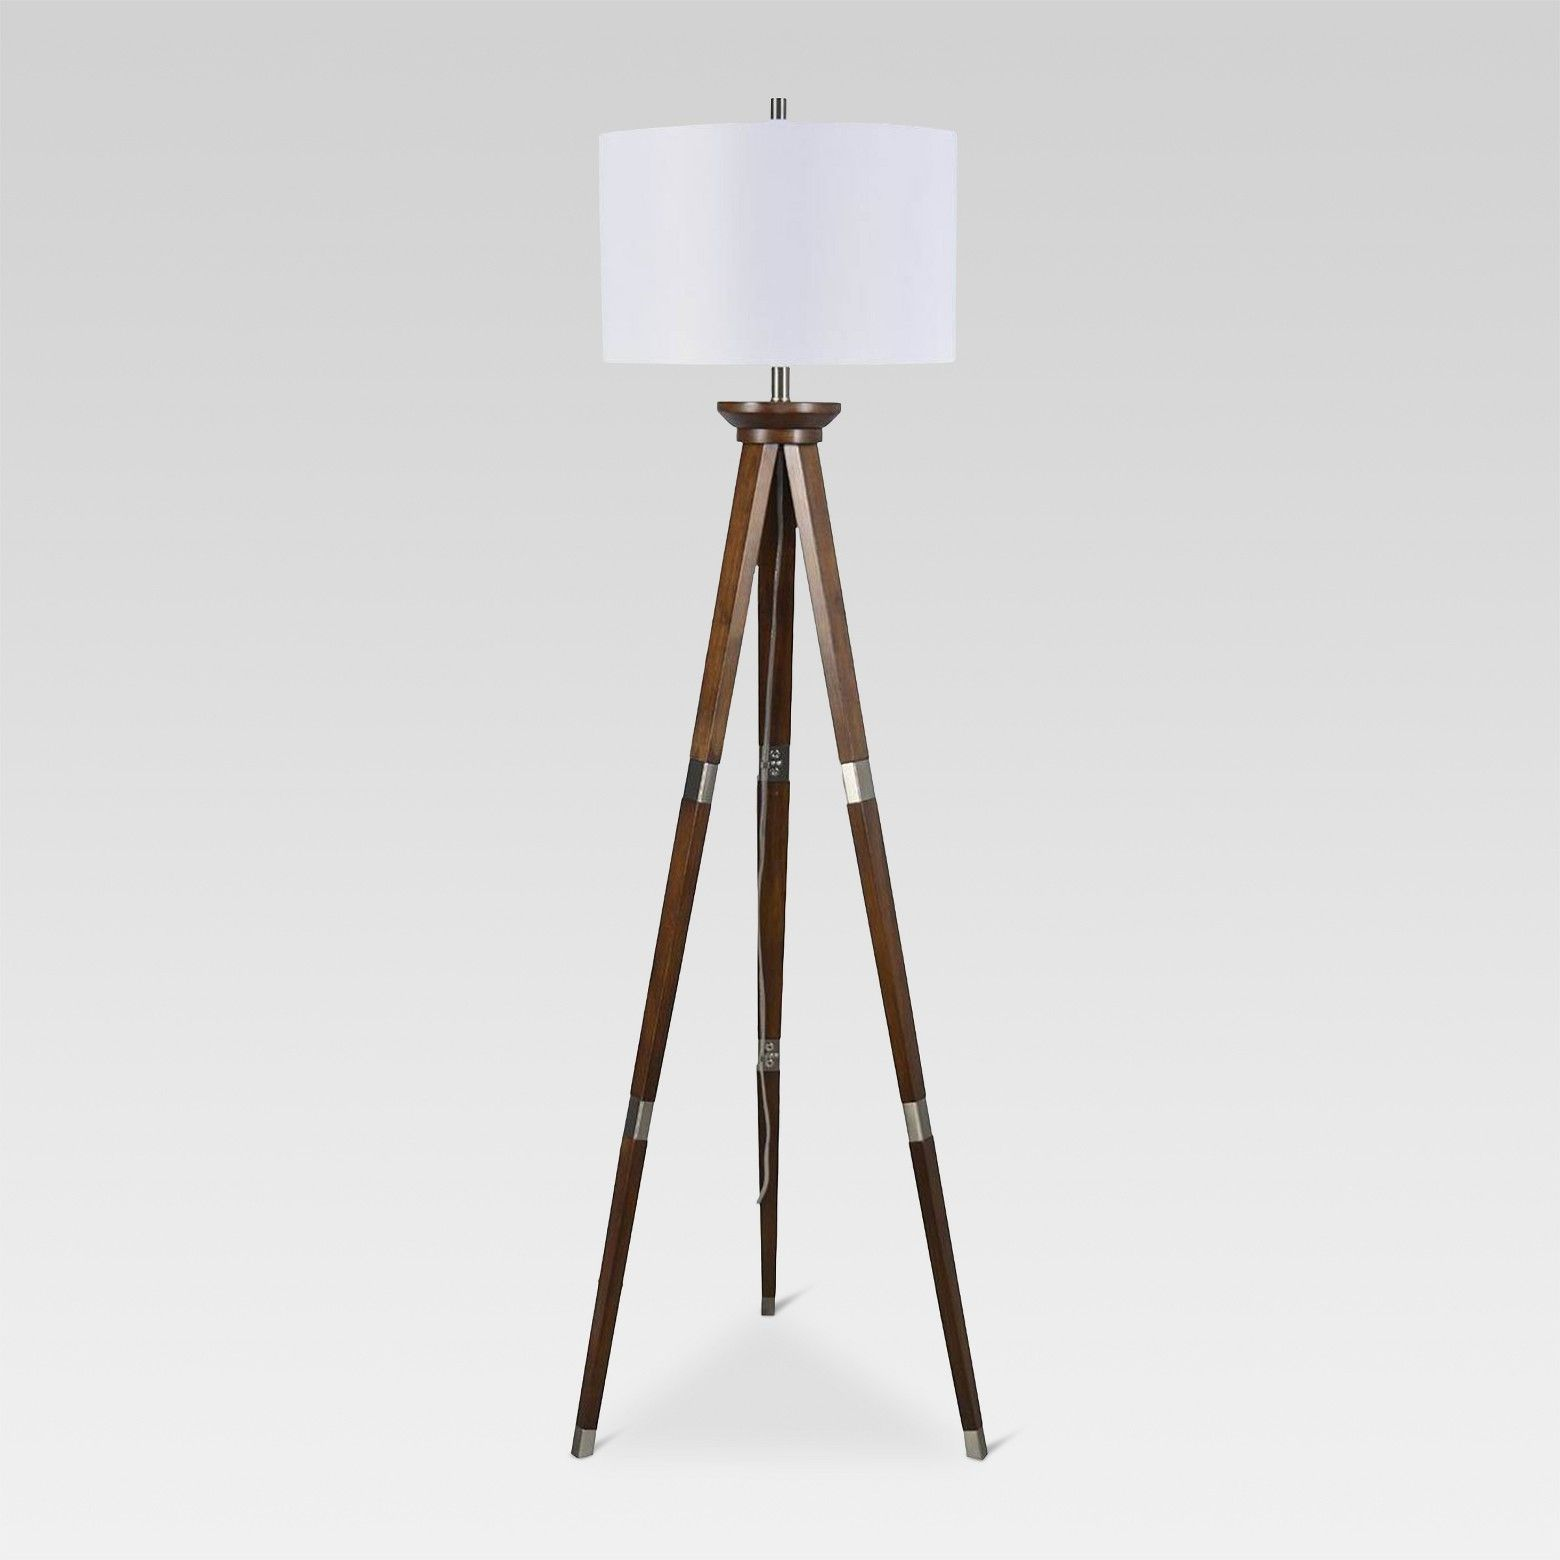 Shop Target For Floor Lamps You Will Love At Great Low Prices